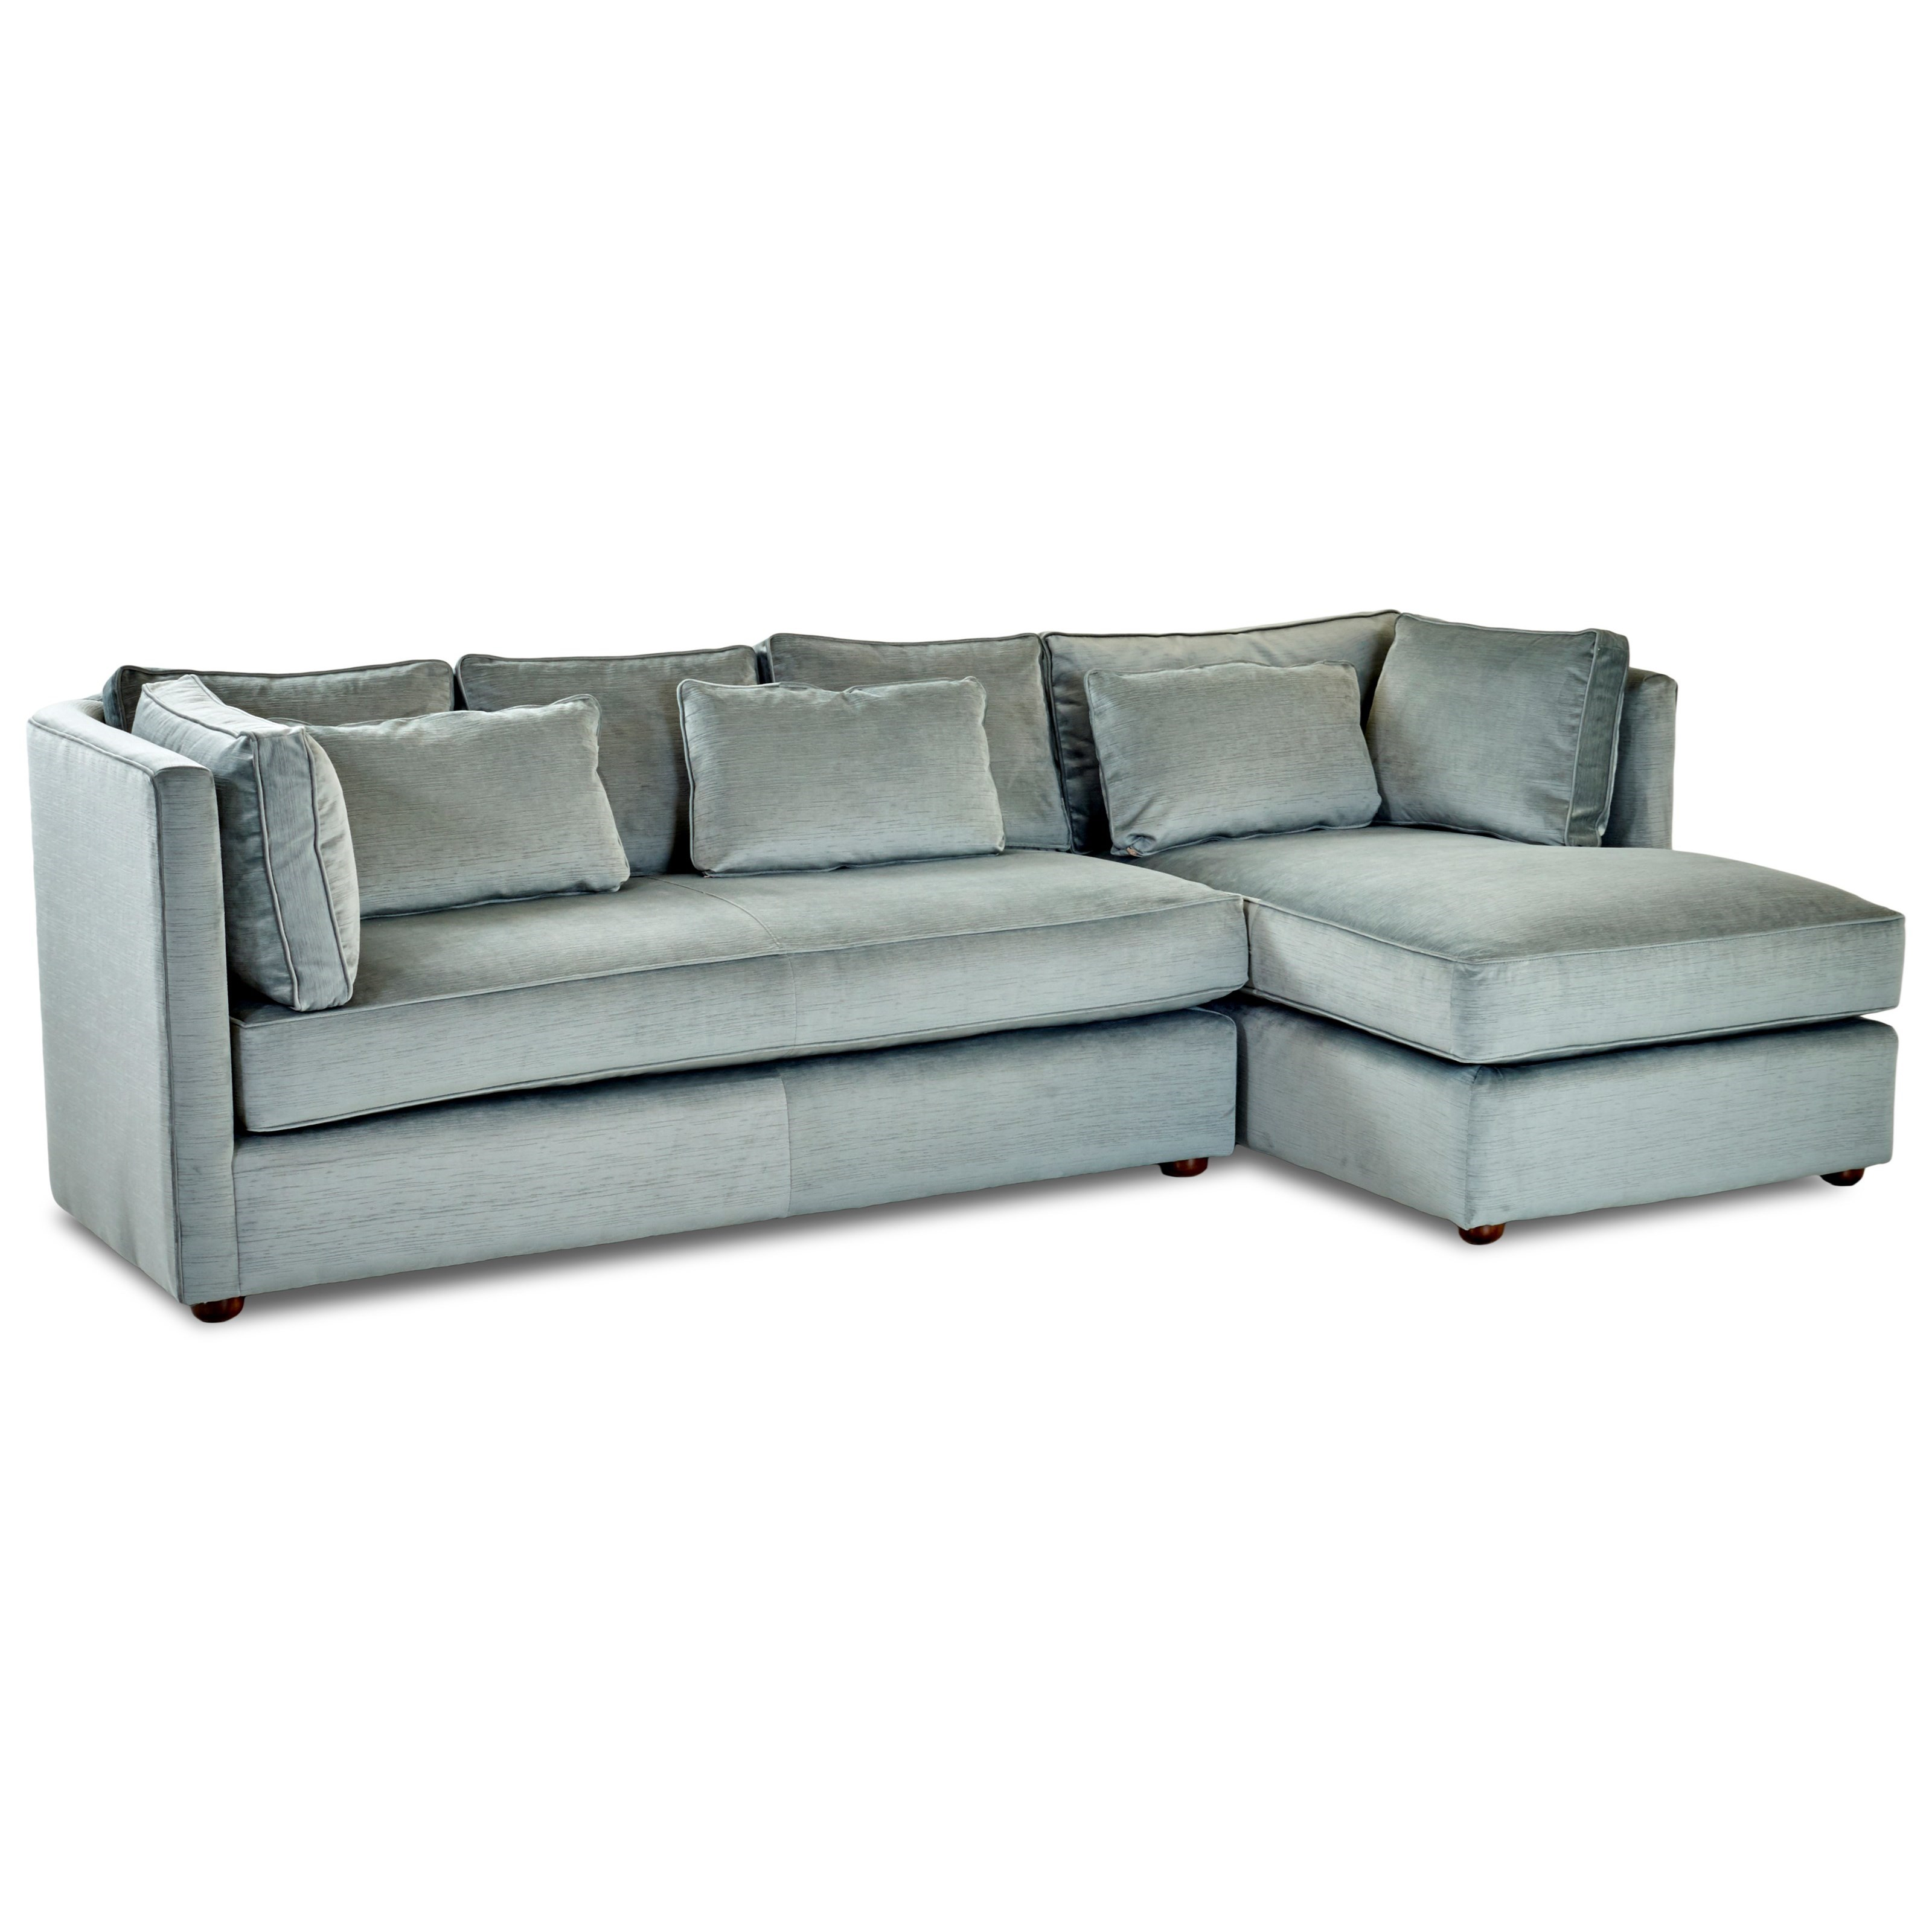 Bon Klaussner Monroe Sofa With Chaise   Item Number: D2100L S+D2100R  CHASE EMPIRE